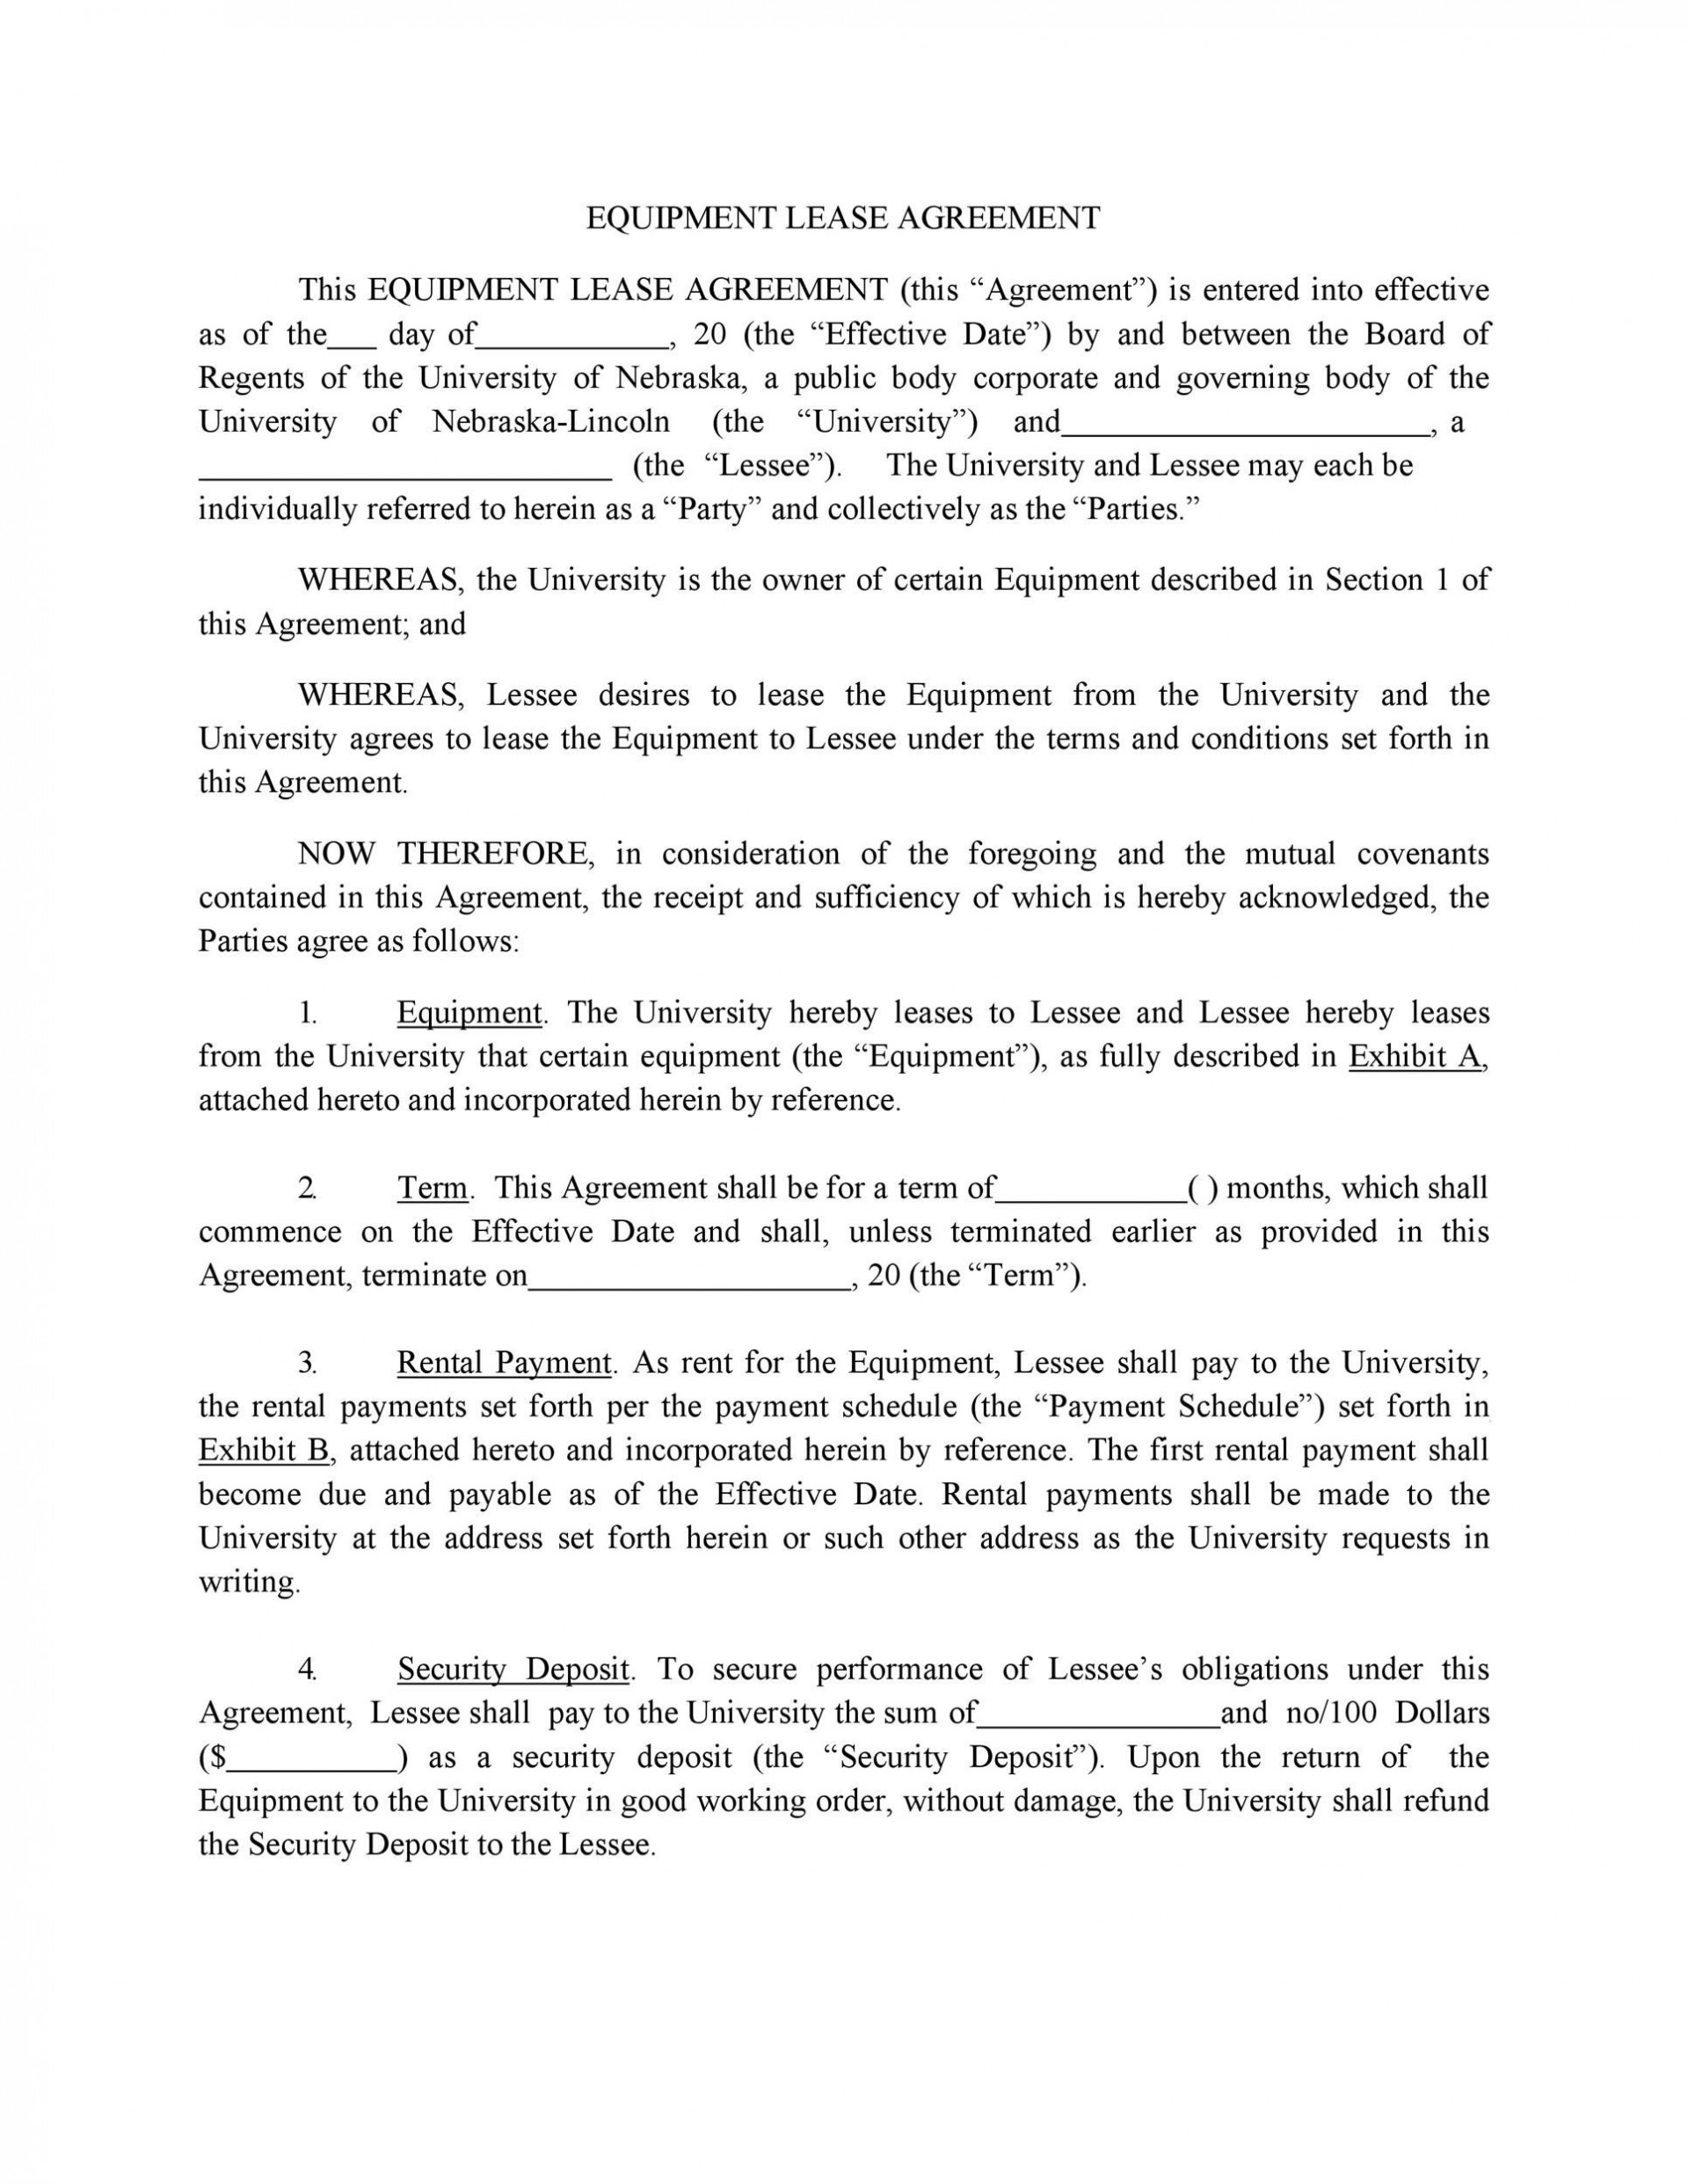 003 Excellent Property Management Agreement Template South Africa Image 1920